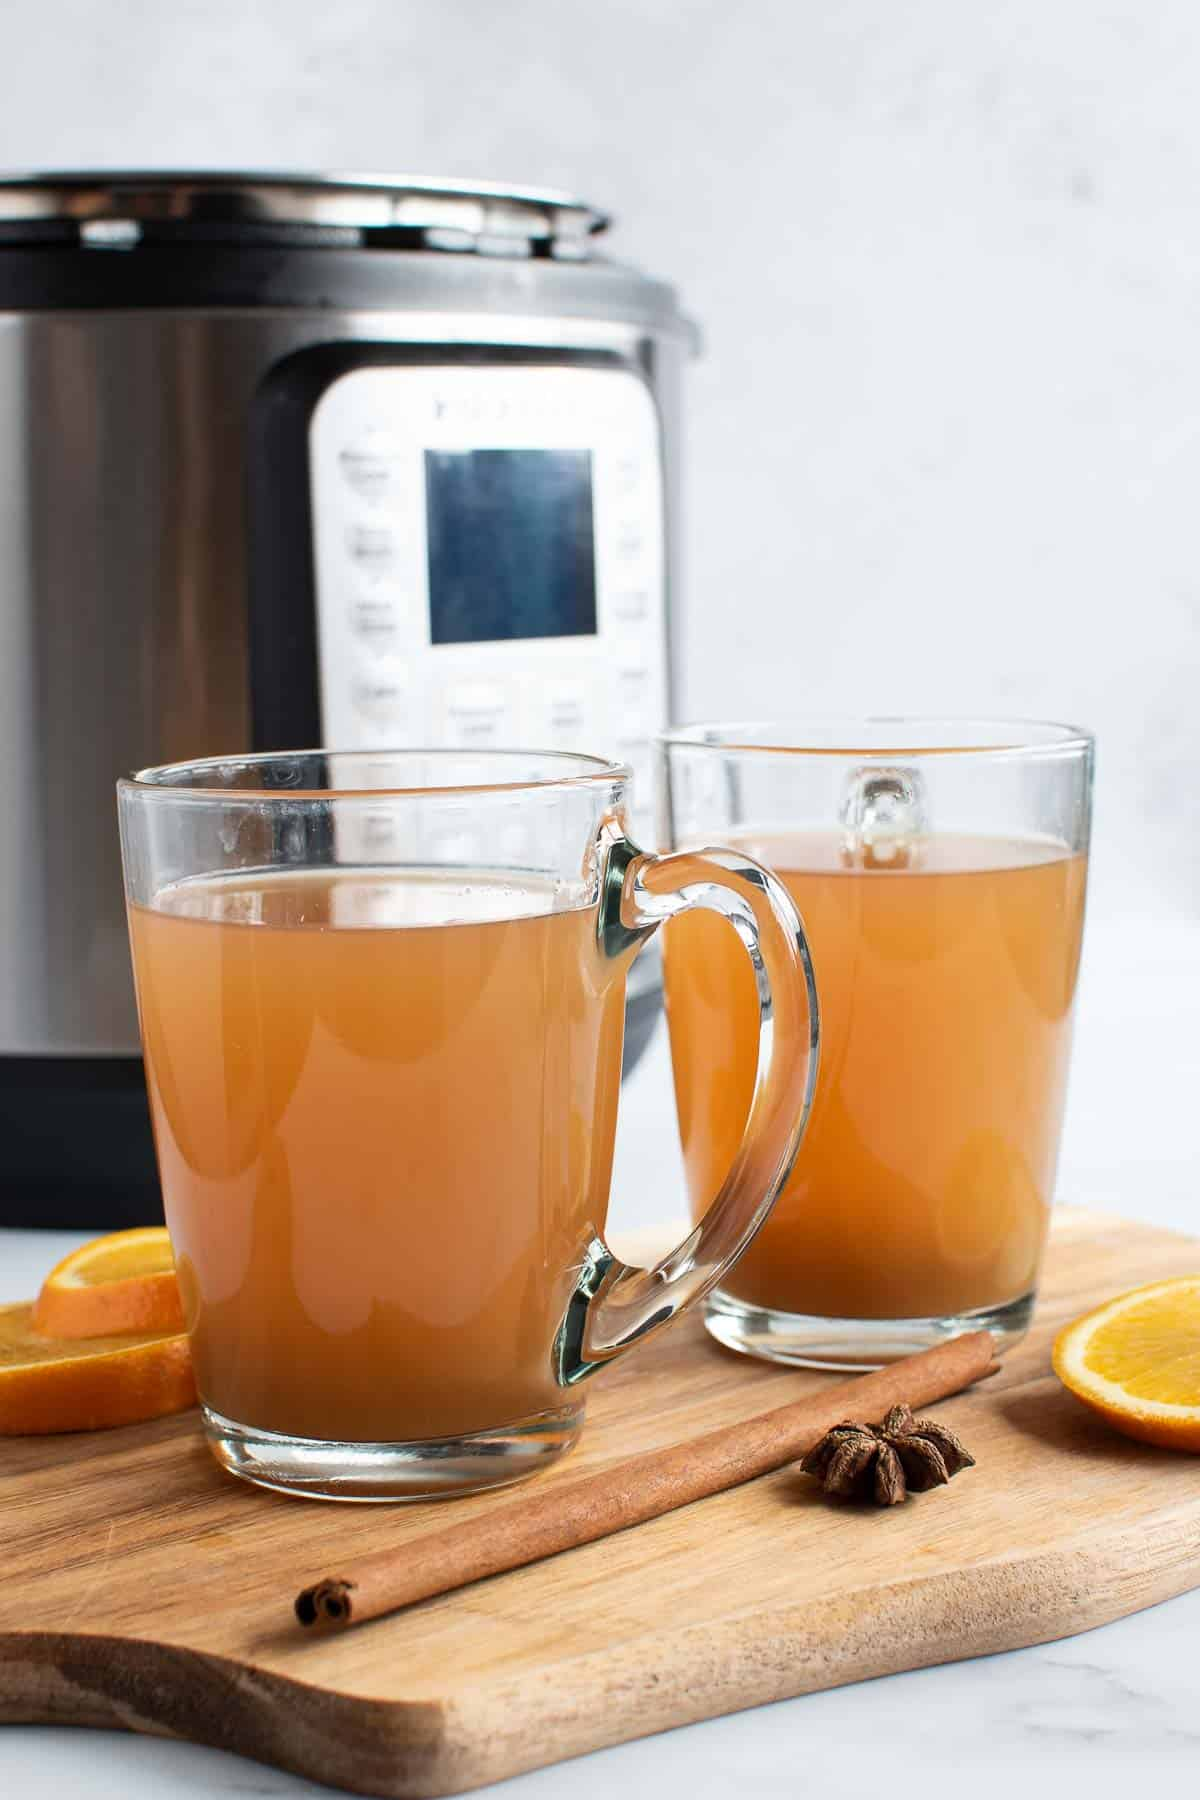 Apple cider in front of an Instant Pot.